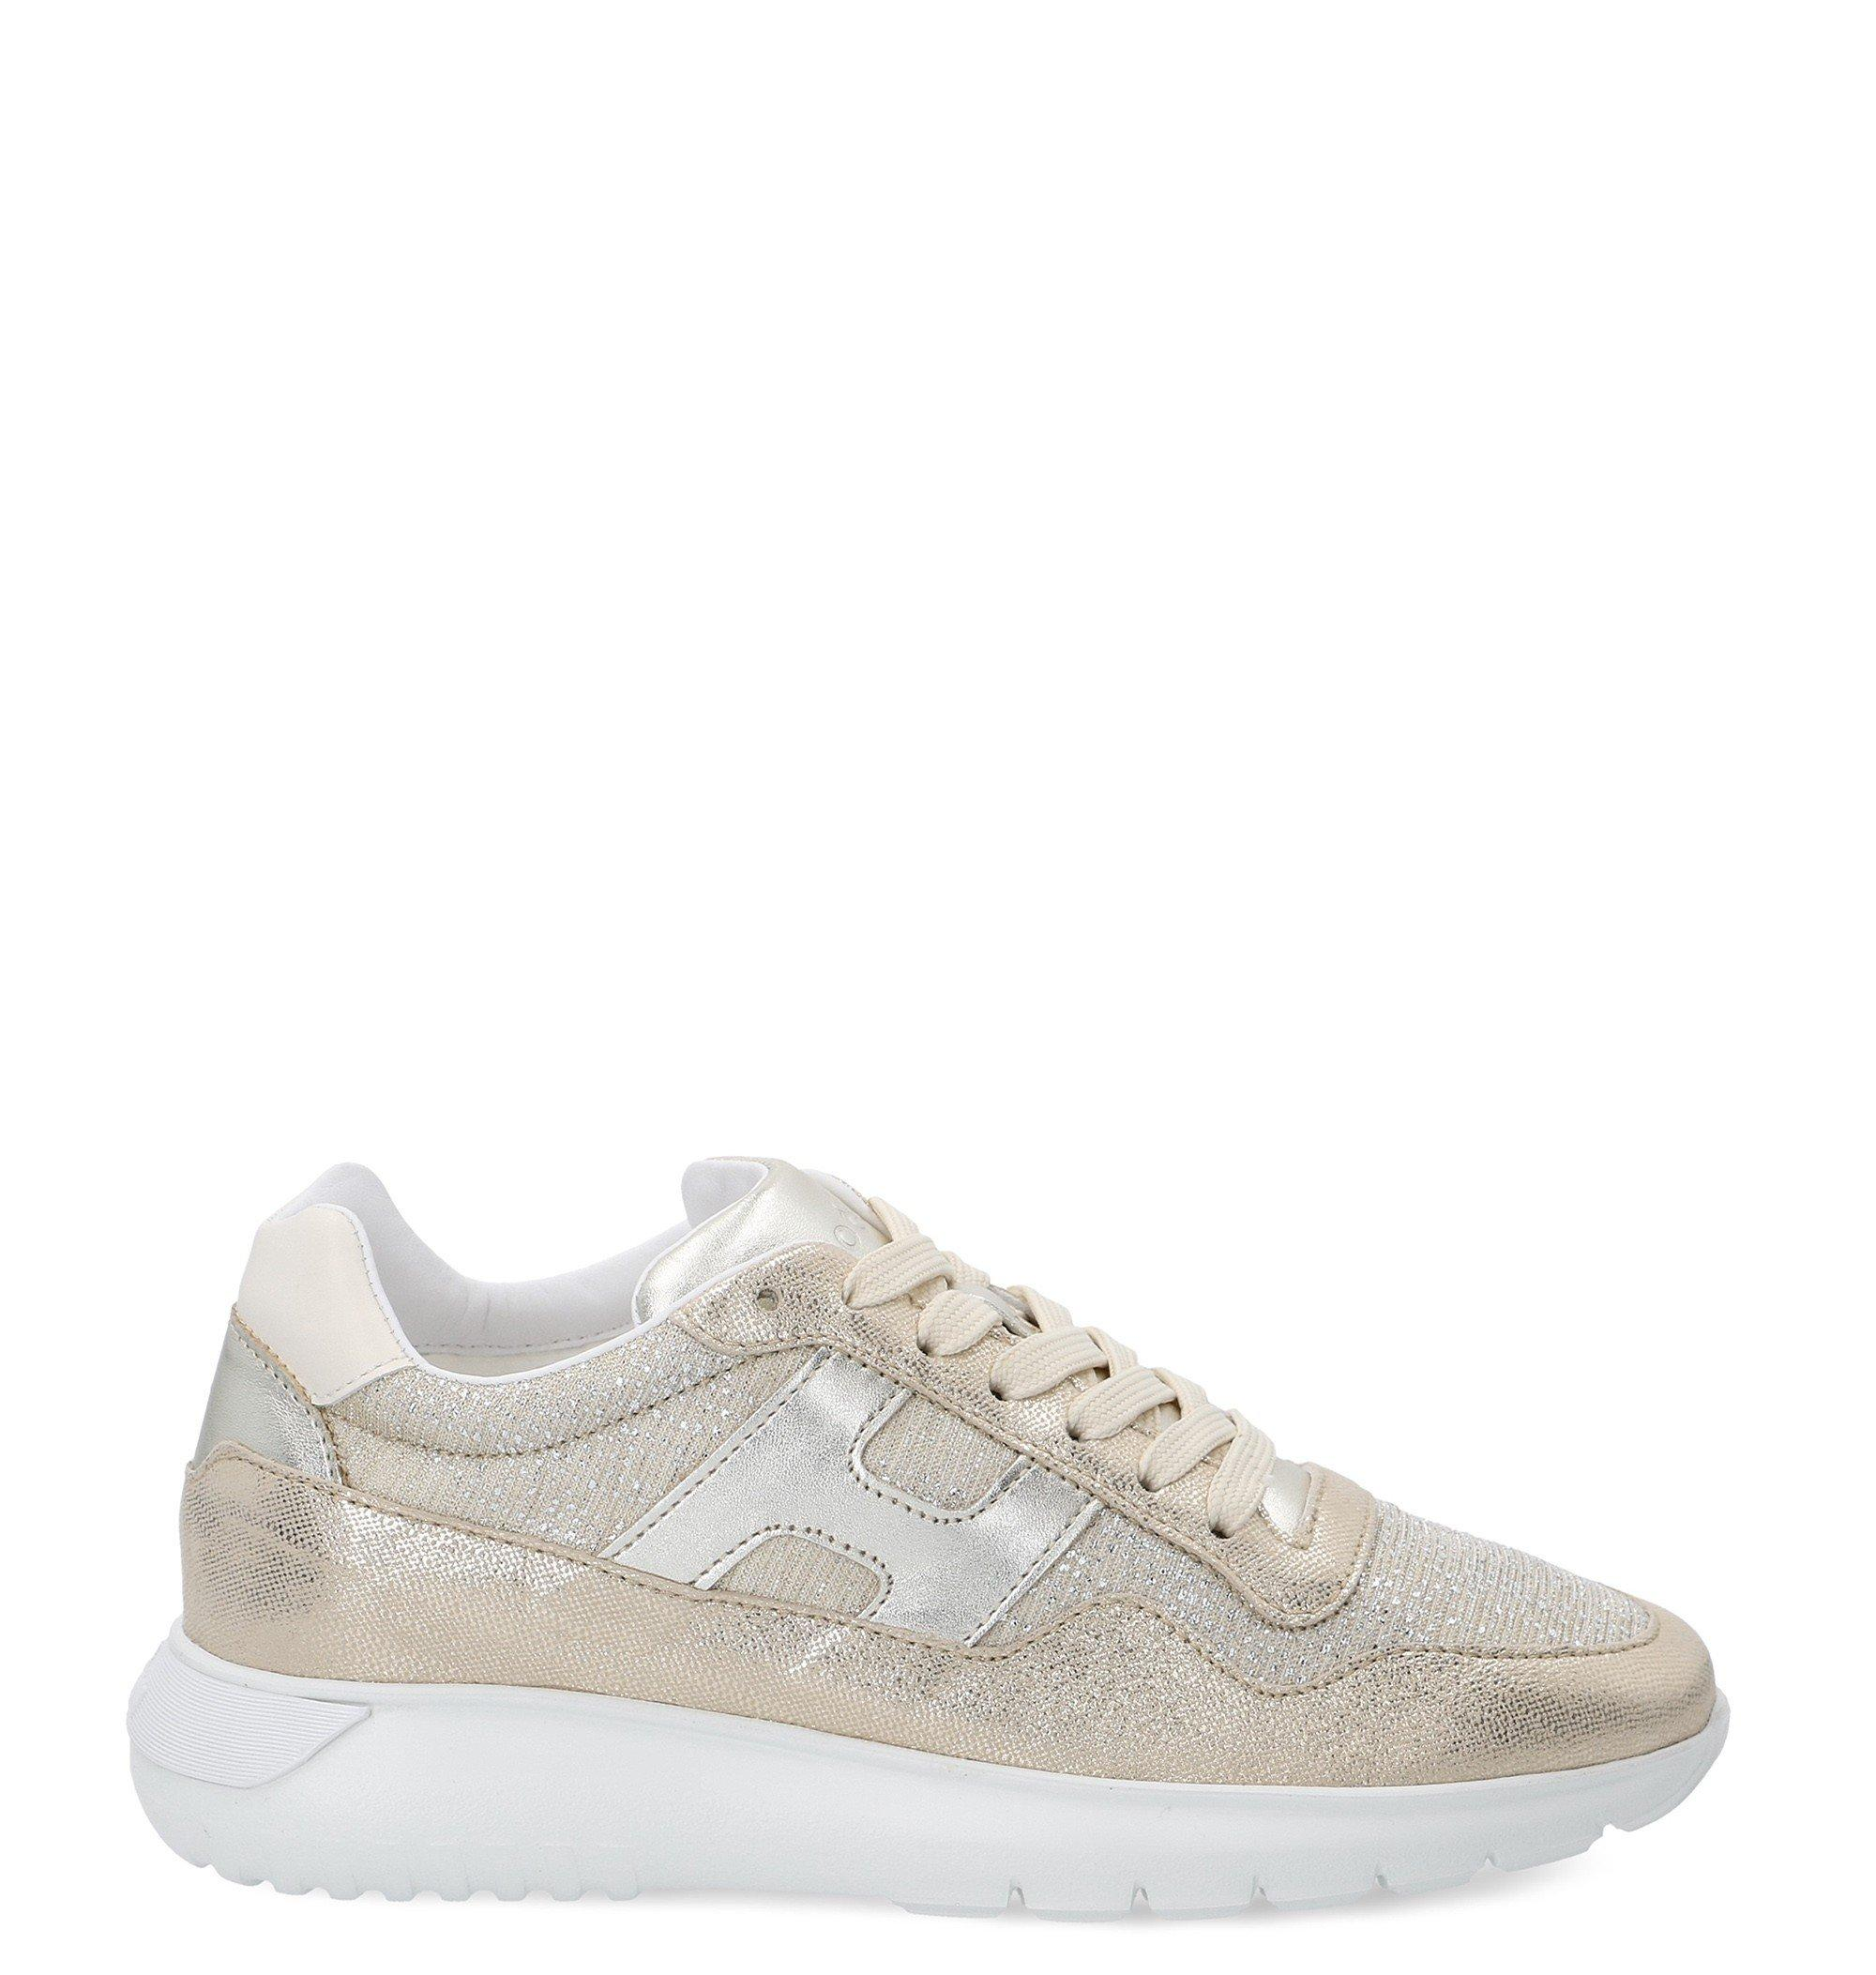 Hogan Leather H371 Interactive Sneakers in Gold (Metallic) - Lyst